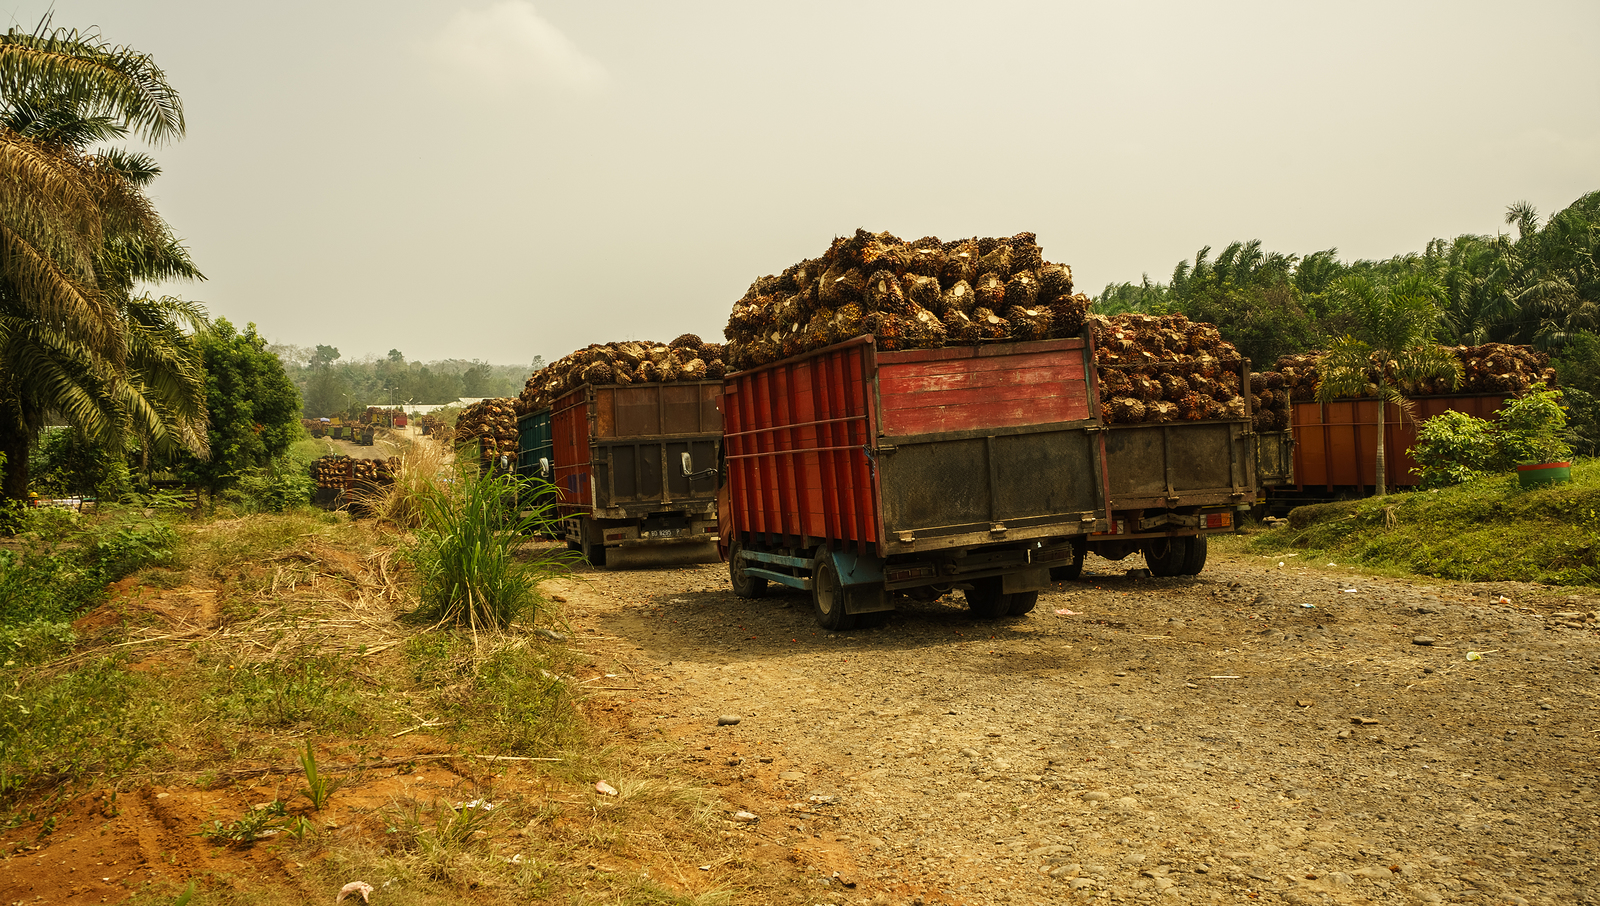 Palm oil fruit driven away for proessing